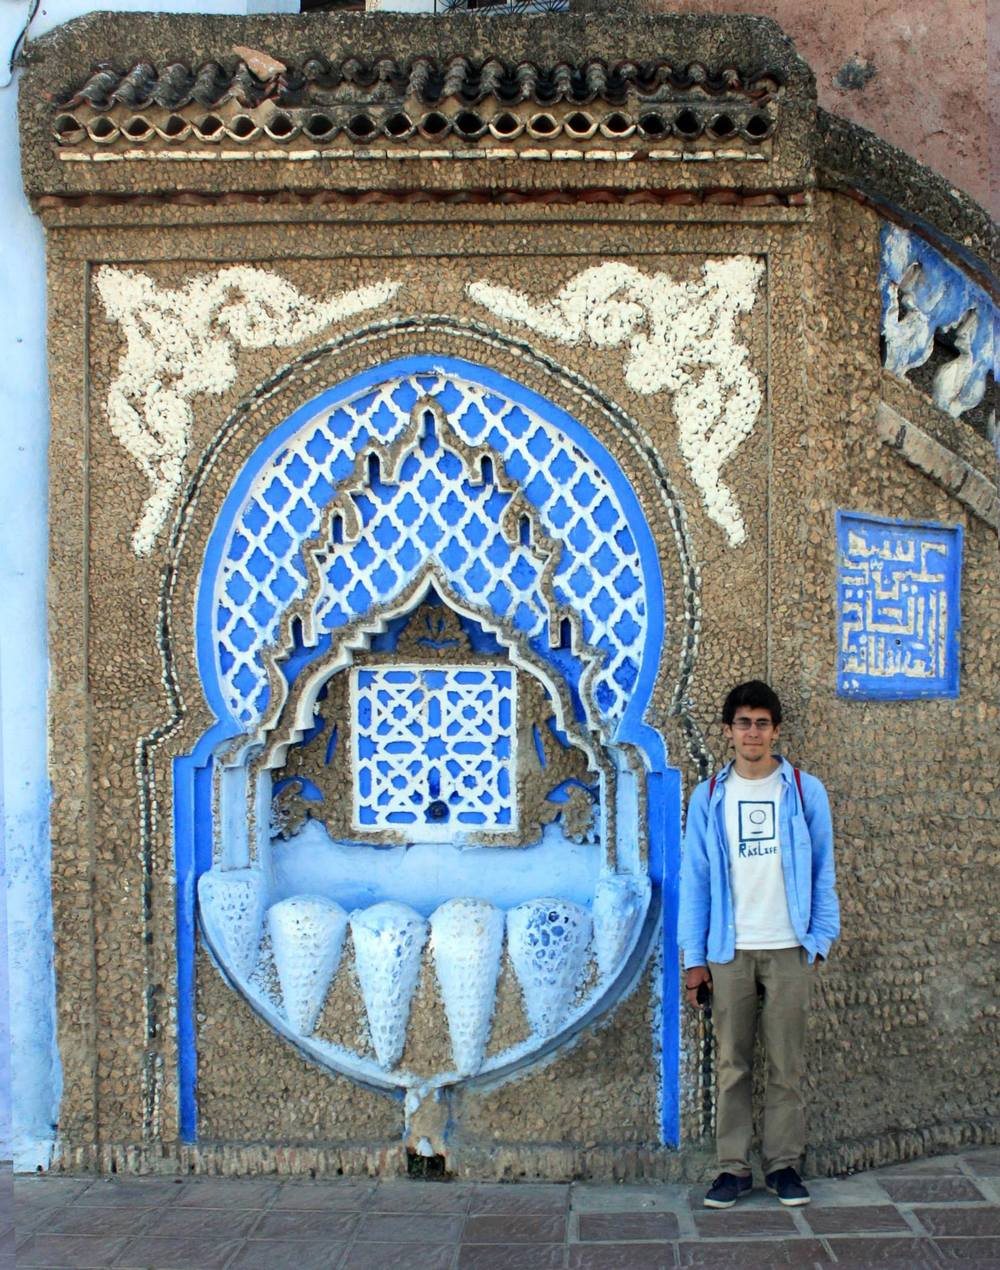 Matt in Chefchaouen Morocco. He wore that outfit for more than two weeks straight.